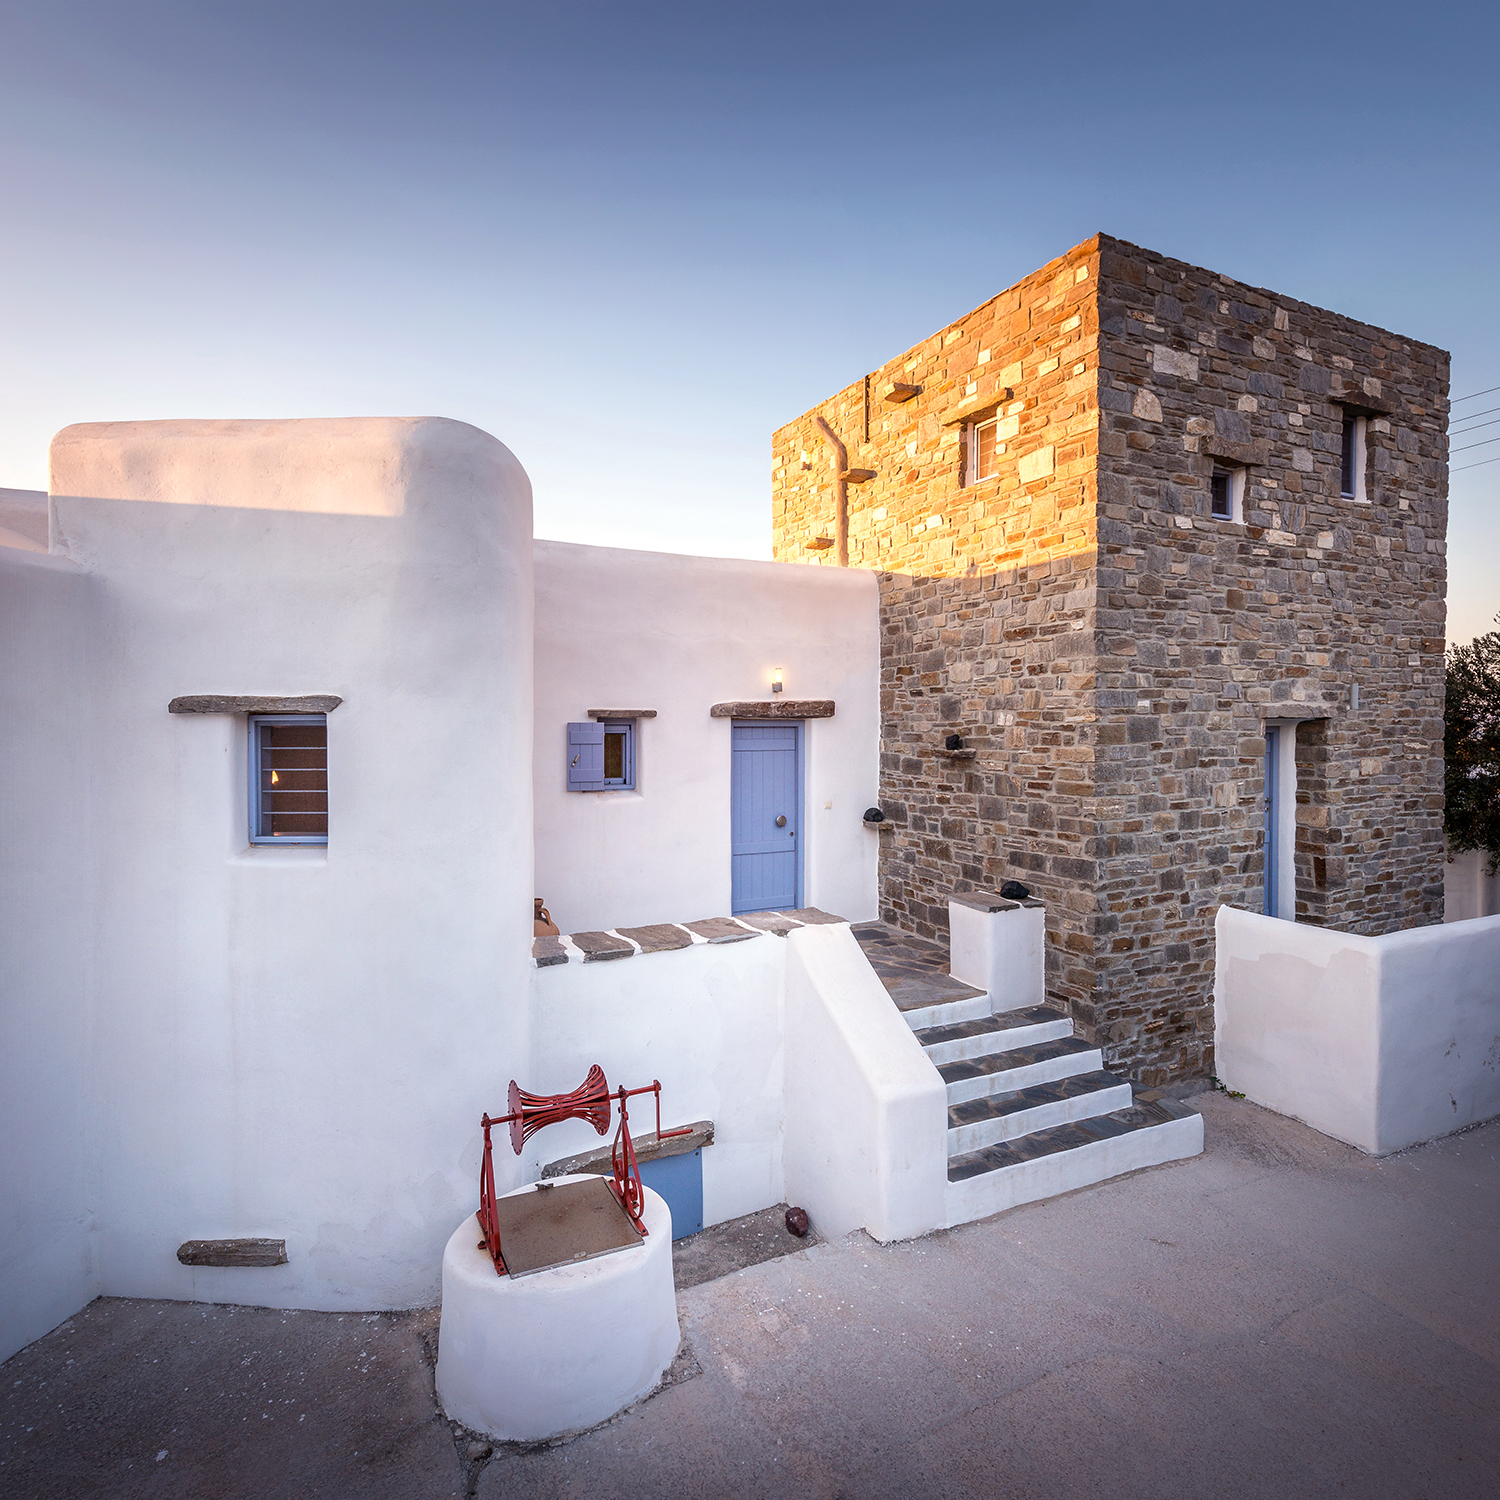 Paros exter firstlight3_800_0040